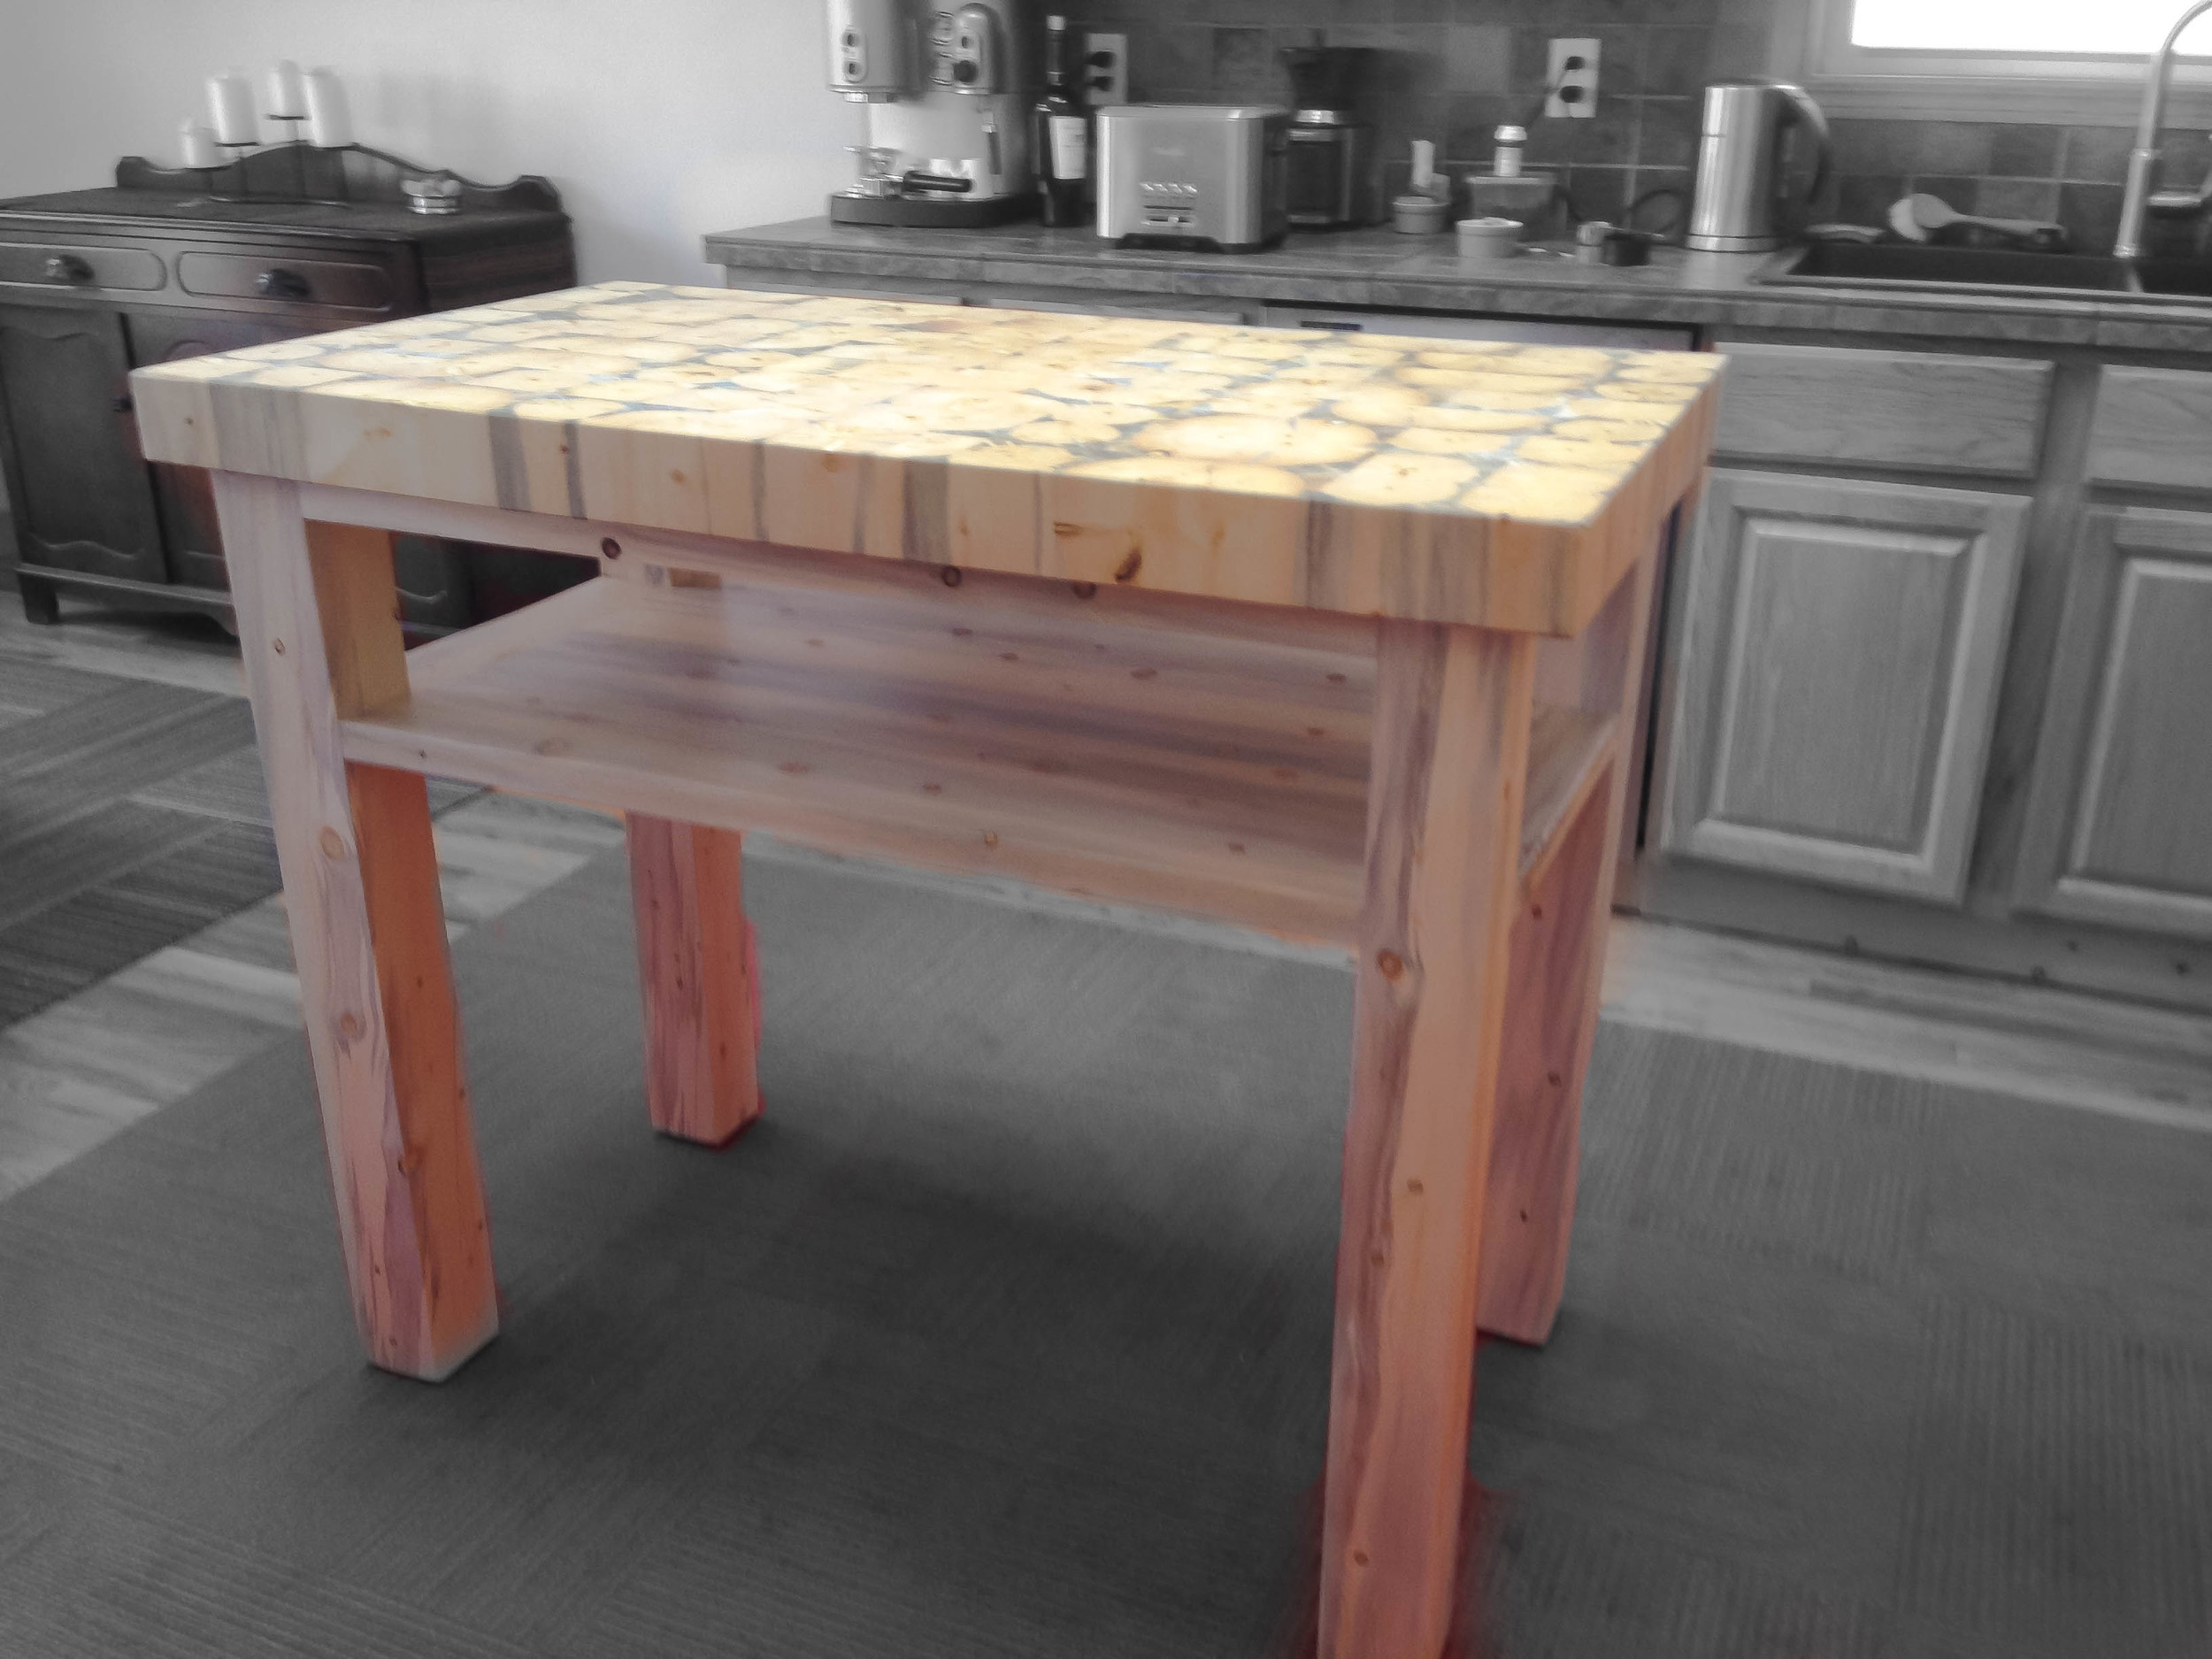 kitchen workbench roll about cart the sadler island colorado tables no drawer style